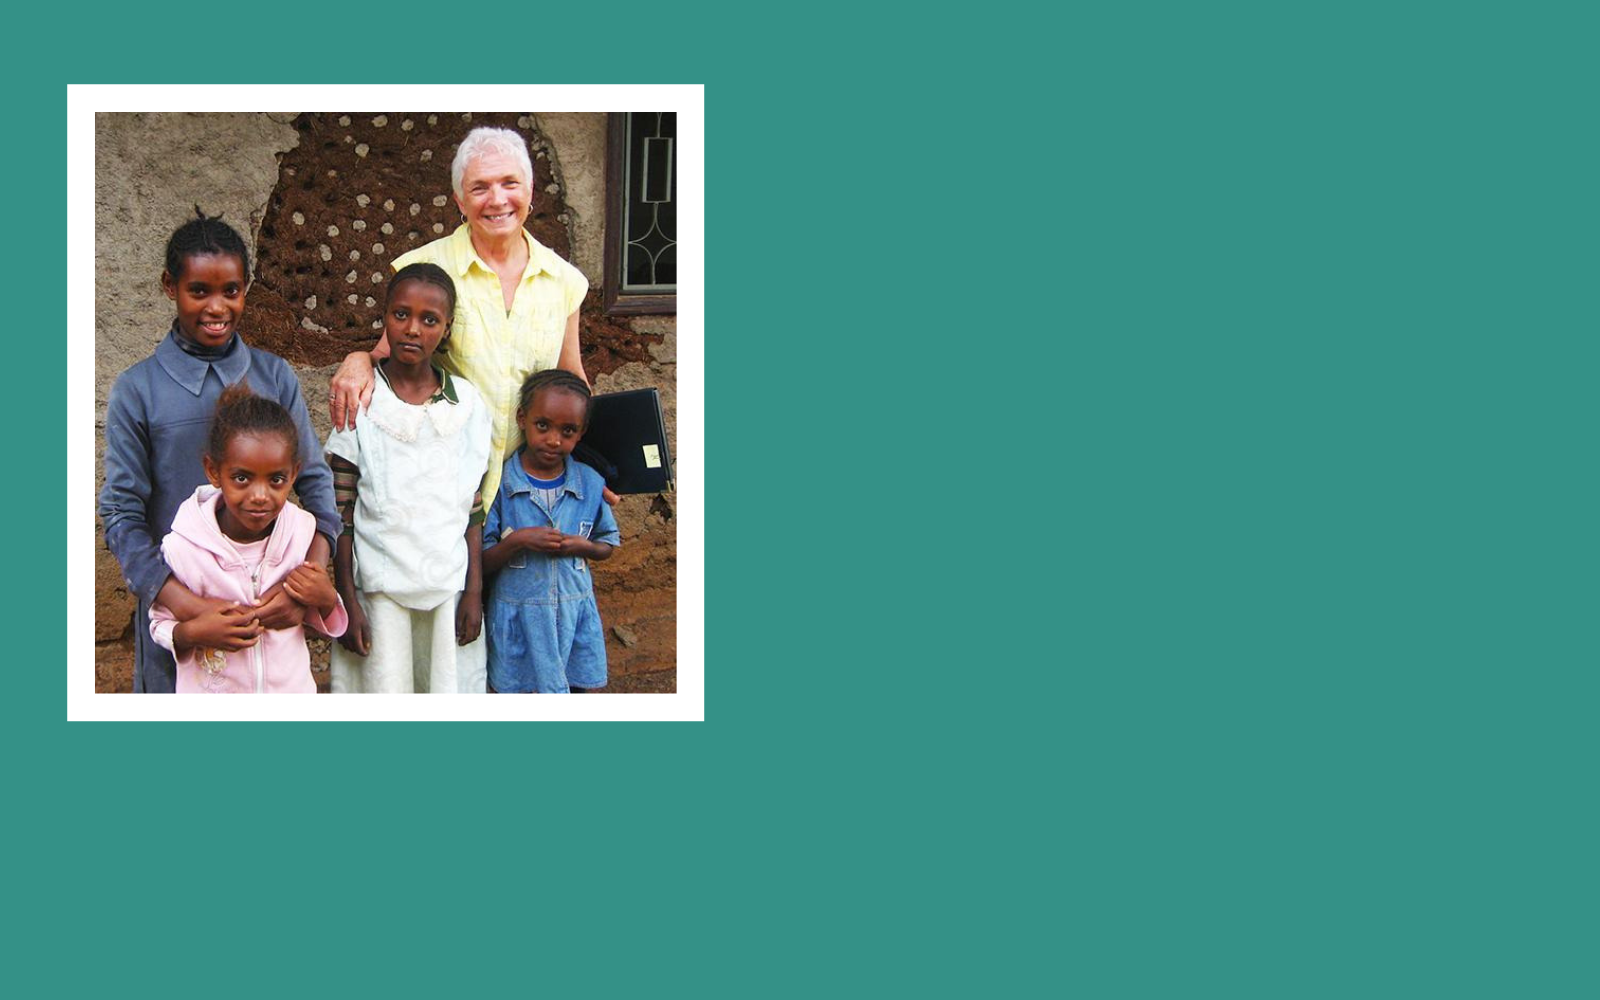 Support Naomi Plate's efforts to bring help and hope. image